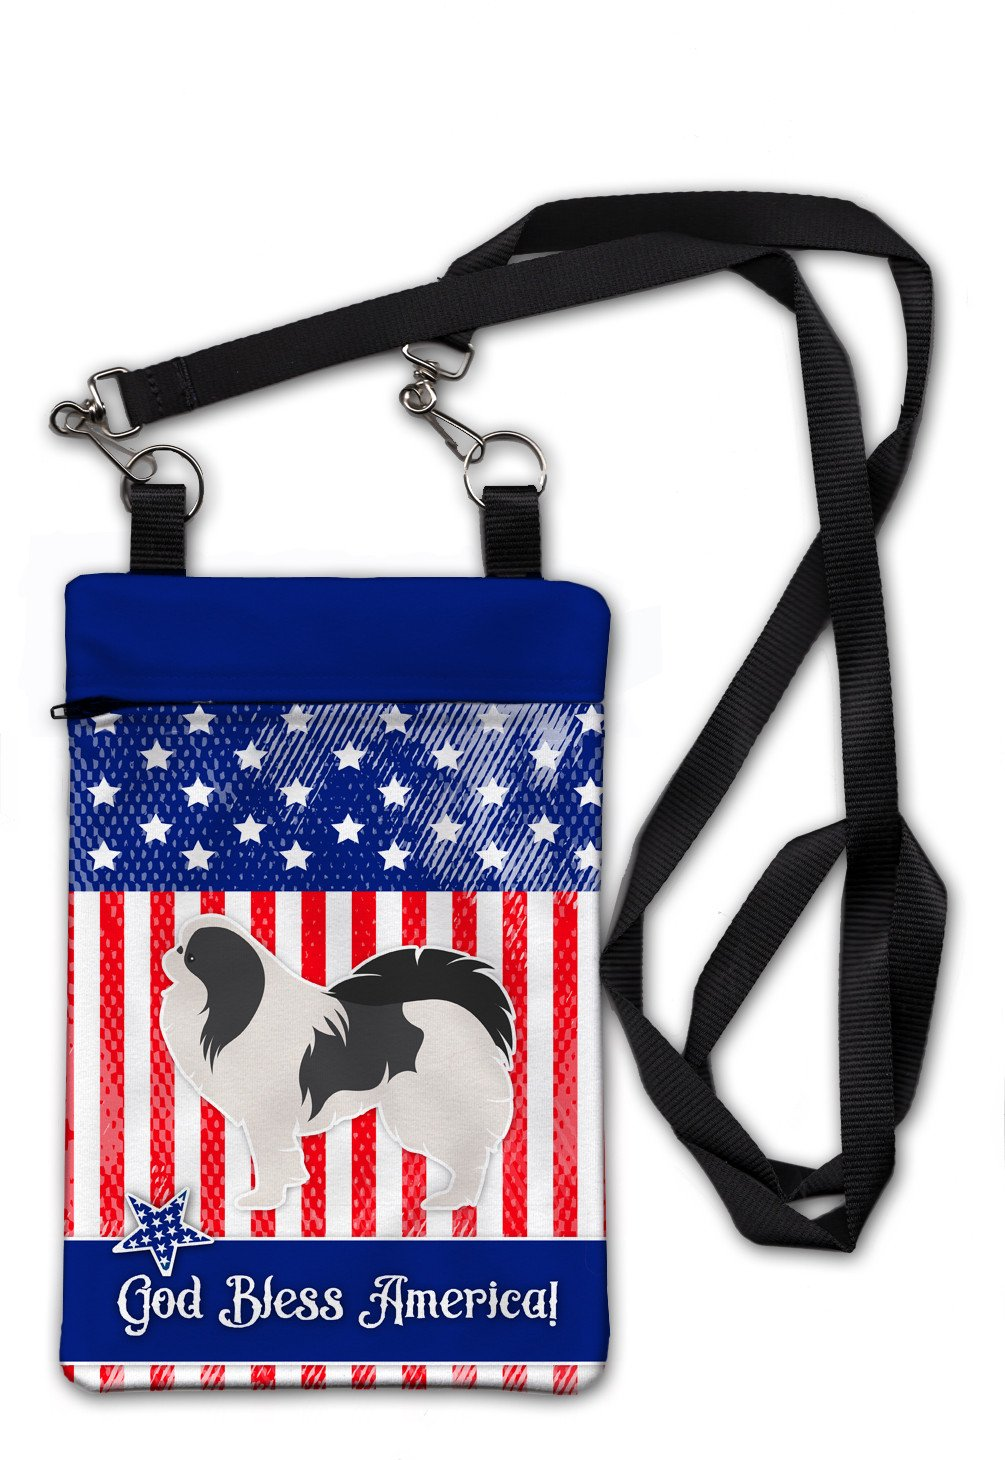 USA Patriotic Japanese Chin Crossbody Bag Purse BB3337OBDY by Caroline's Treasures